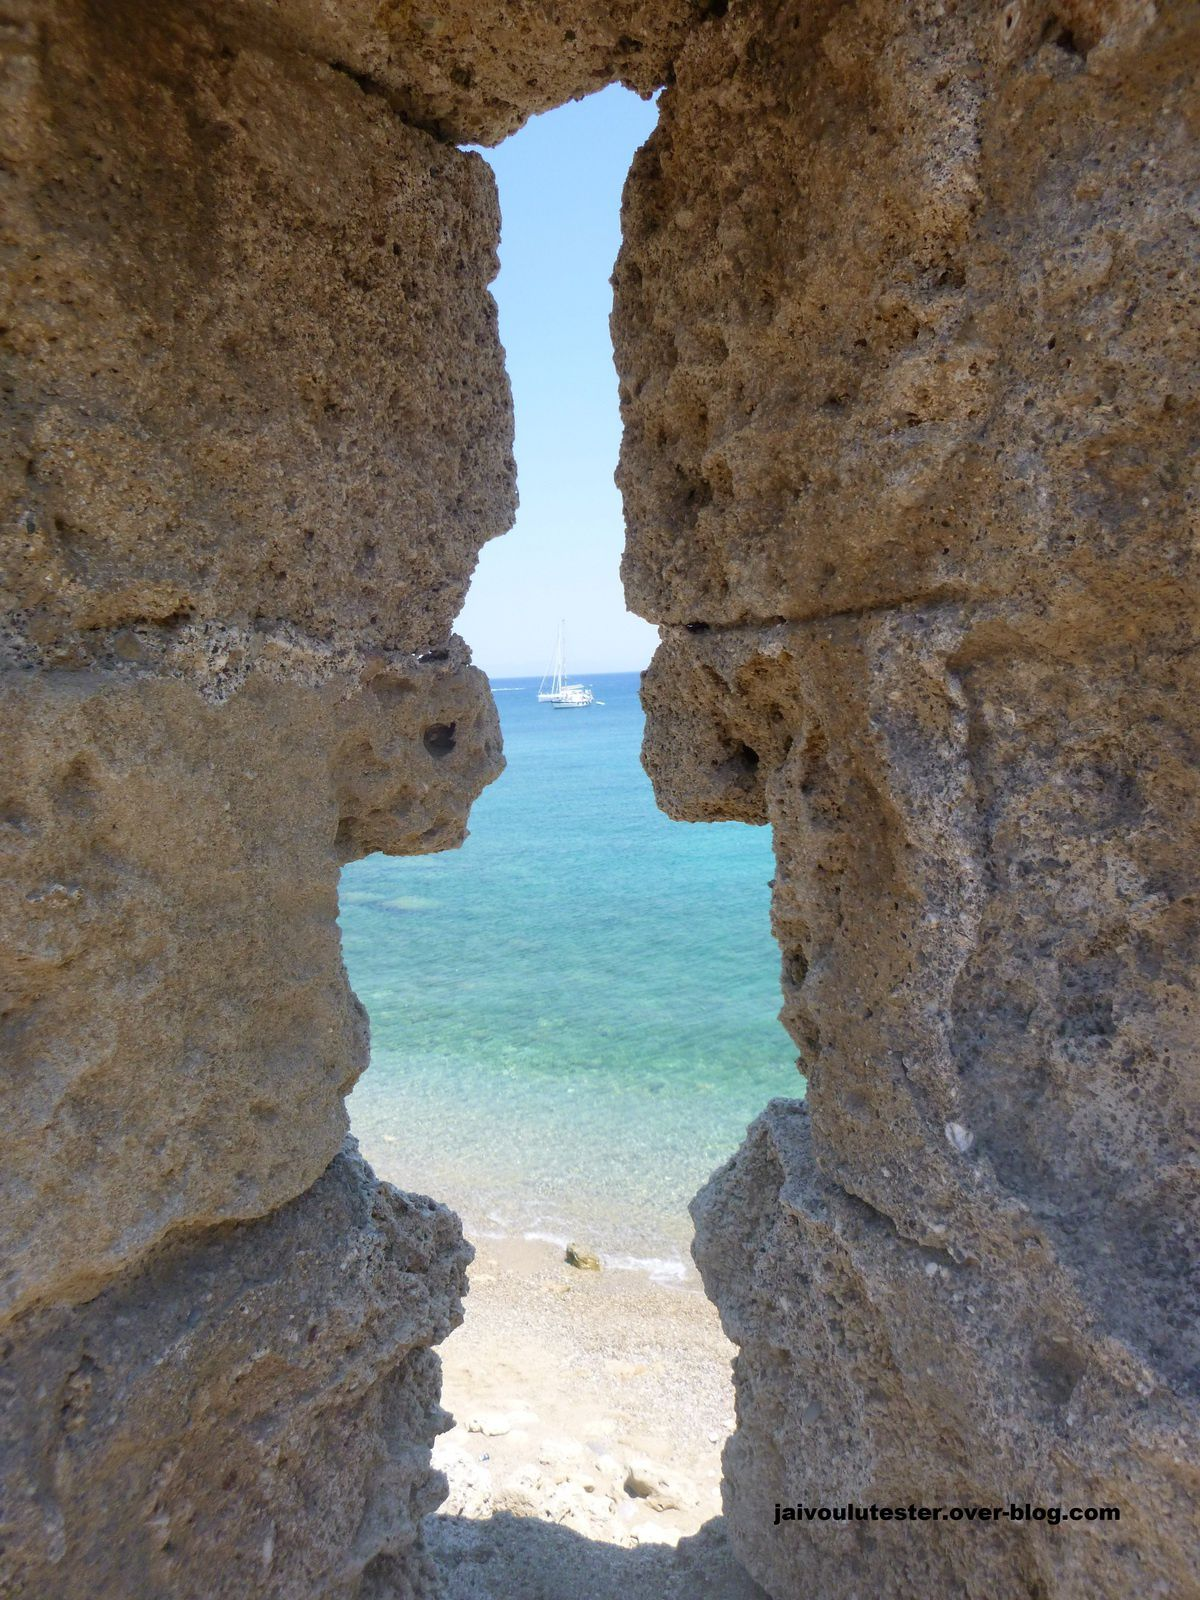 ... le FOMO (Fear Of Missing Out) et les vacances